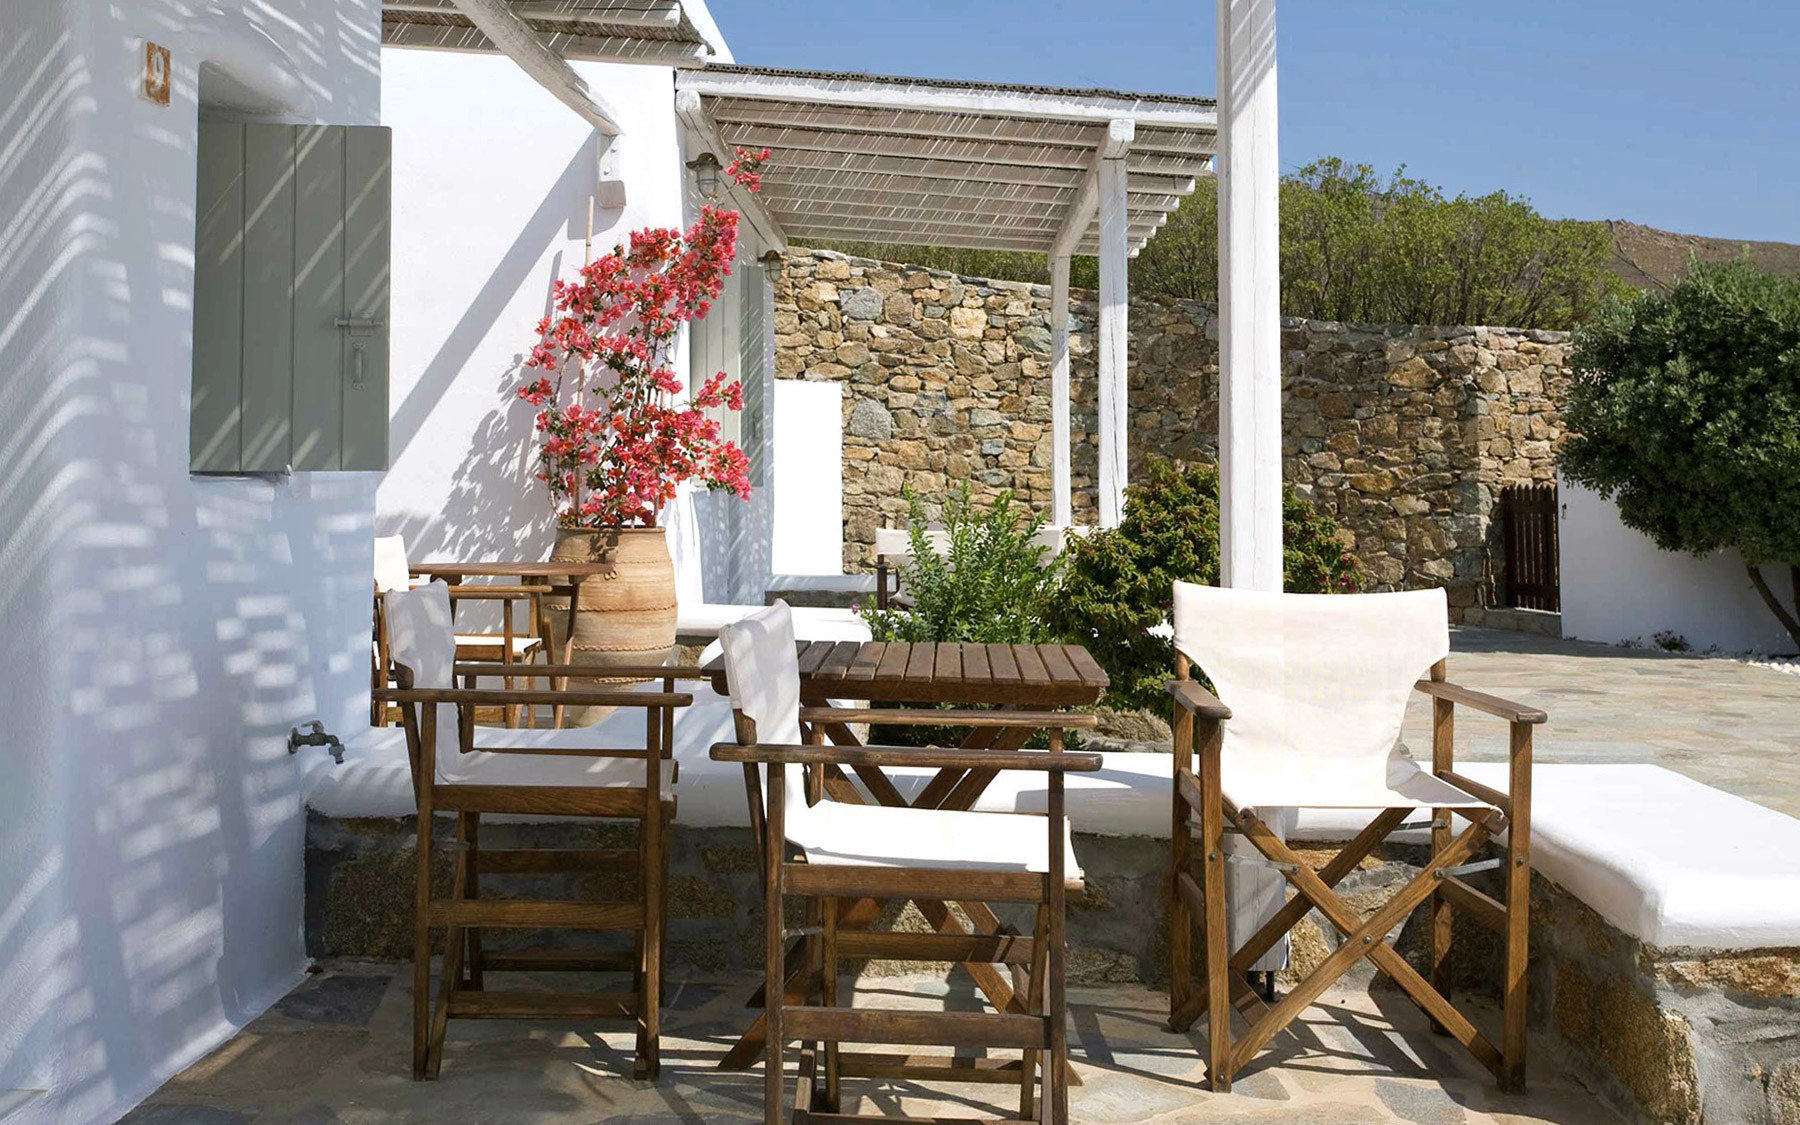 chair property porch home cottage Dining outdoor structure backyard Villa Patio farmhouse Courtyard